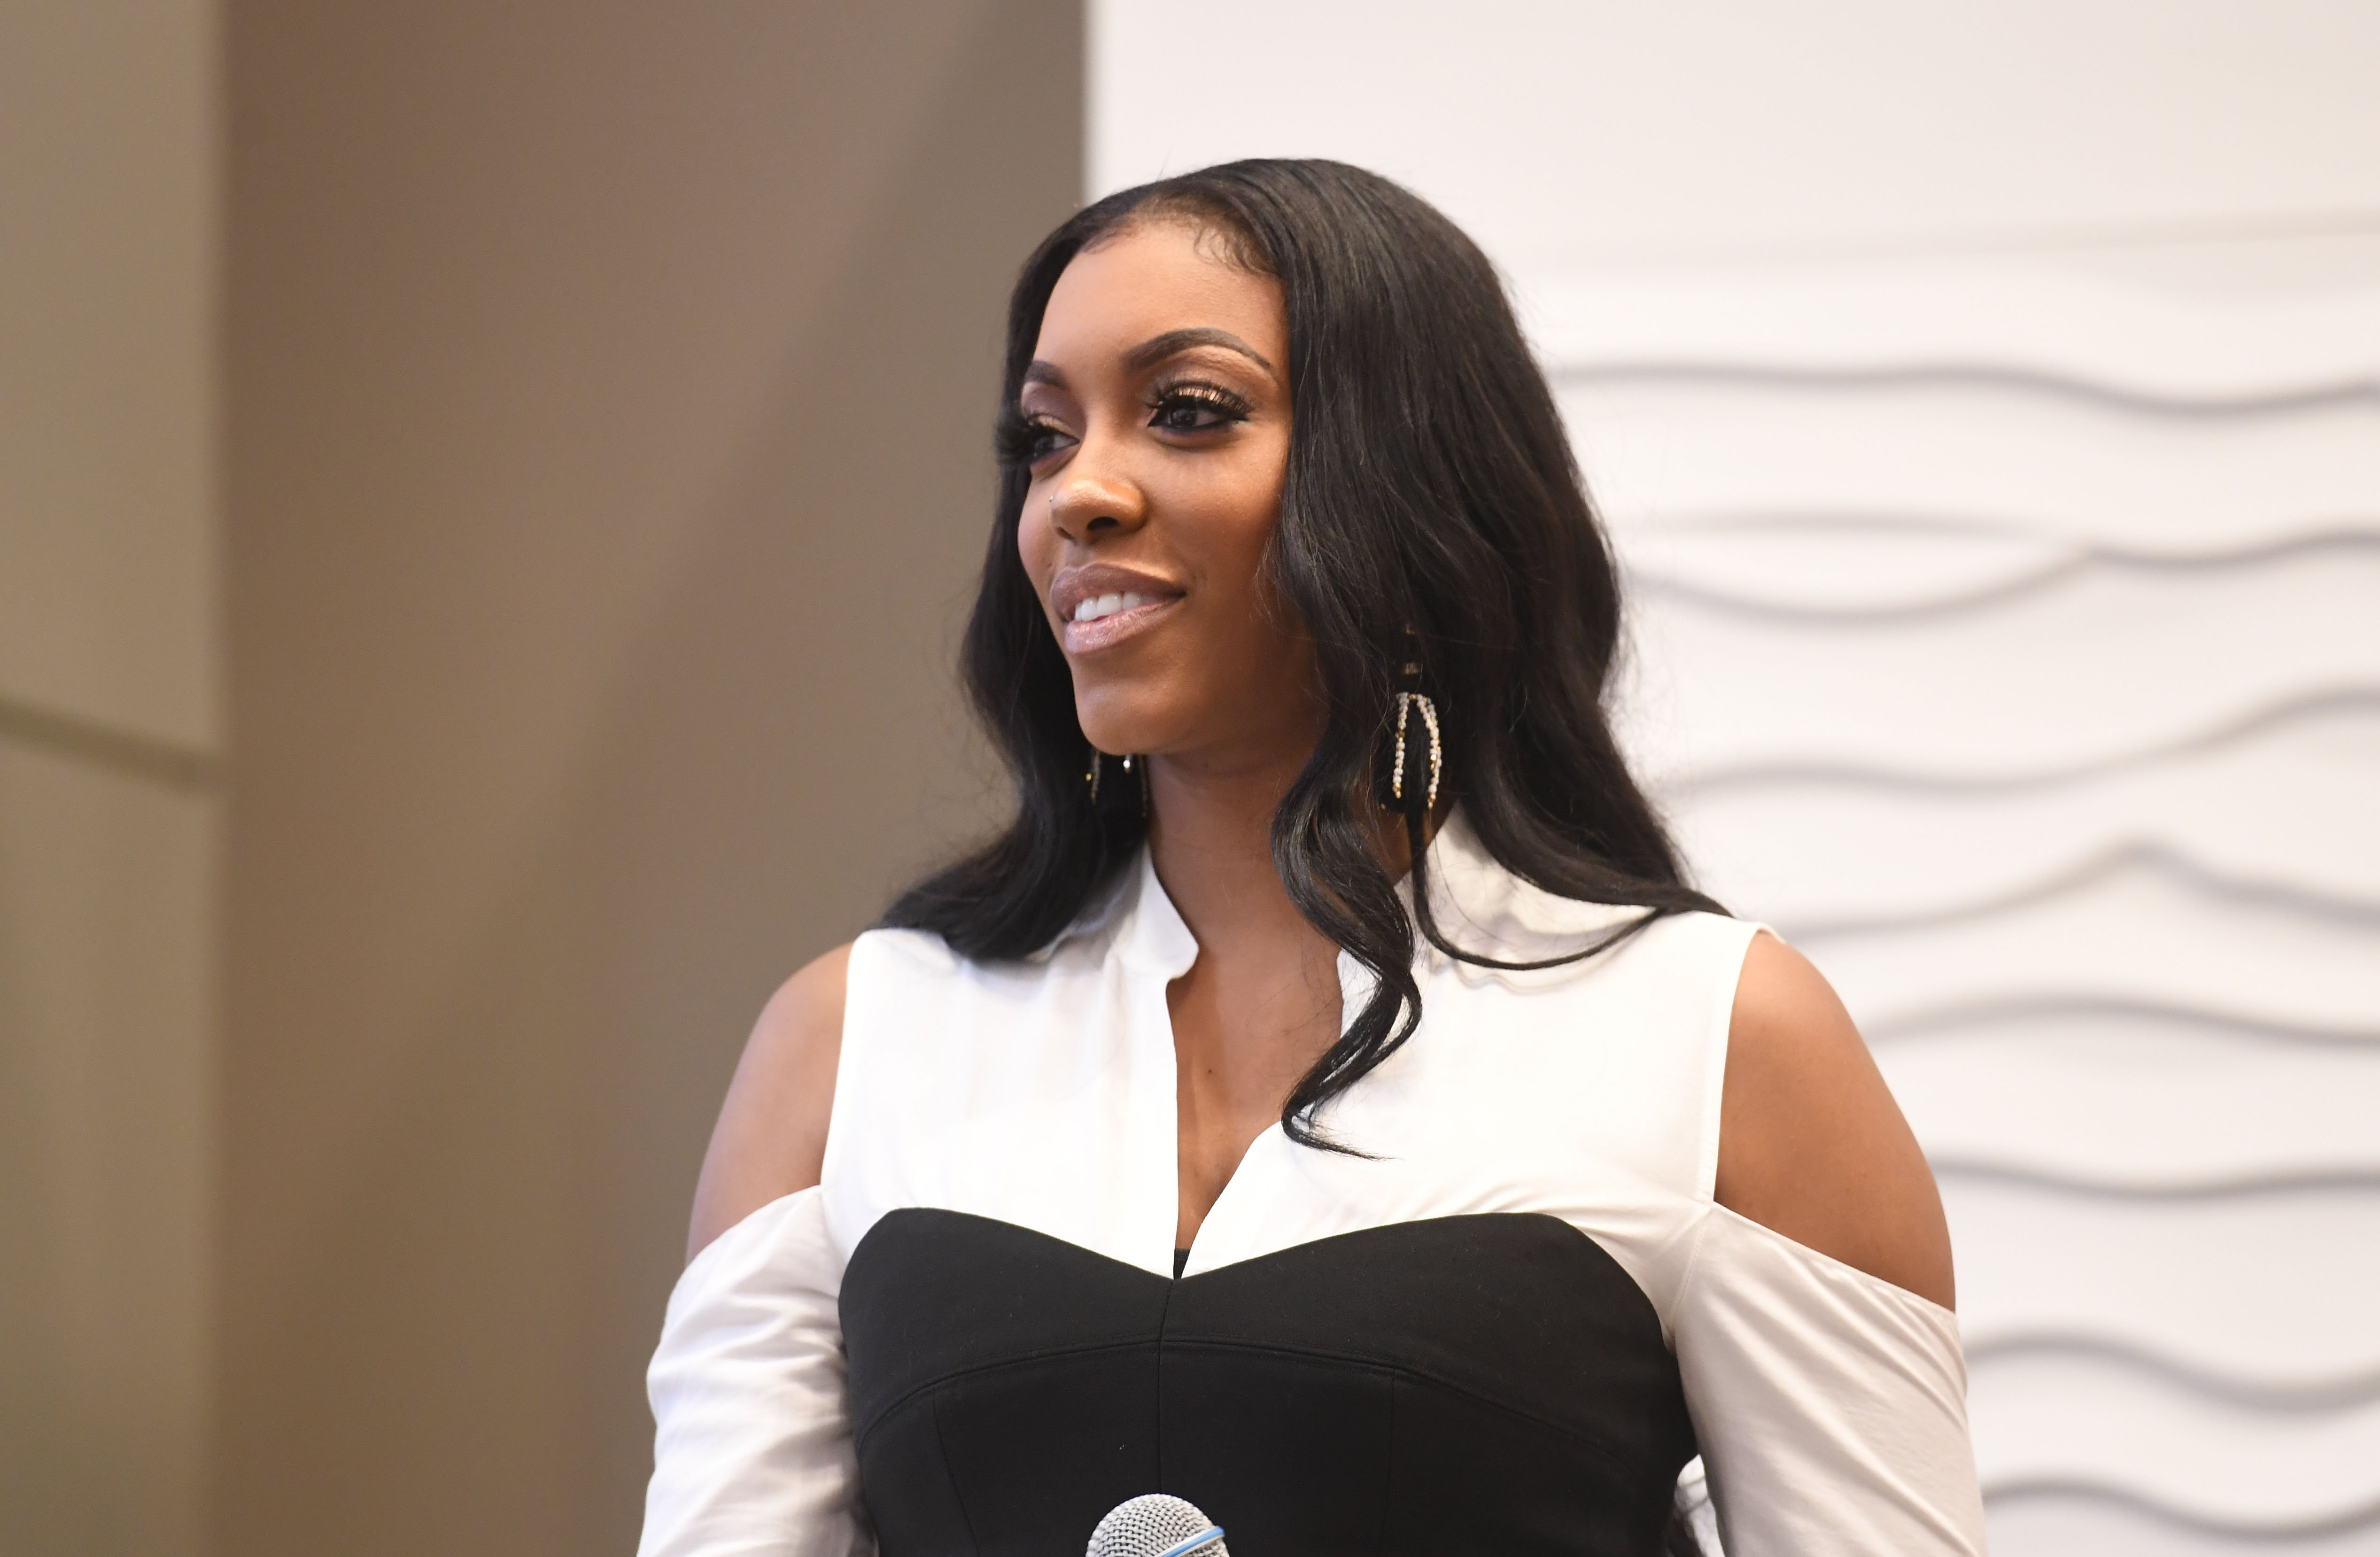 Porsha Williams speaks onstage at 2018 Hosea's Heroes Awards at Loudermilk Conference Center on February 25, 2018 | Photo: GettyImages